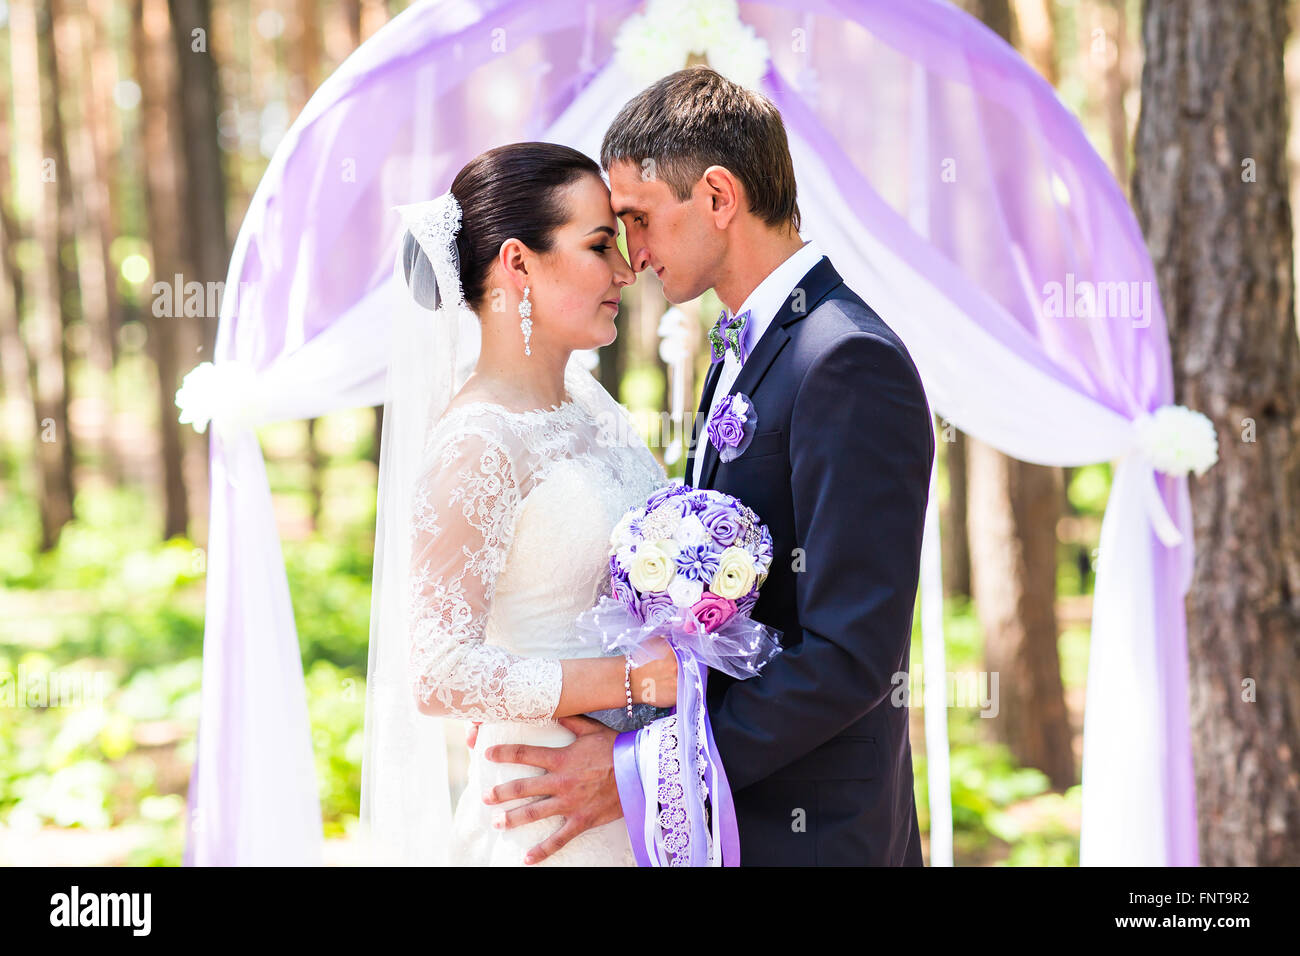 Bride and Groom Under Archway Stock Photo